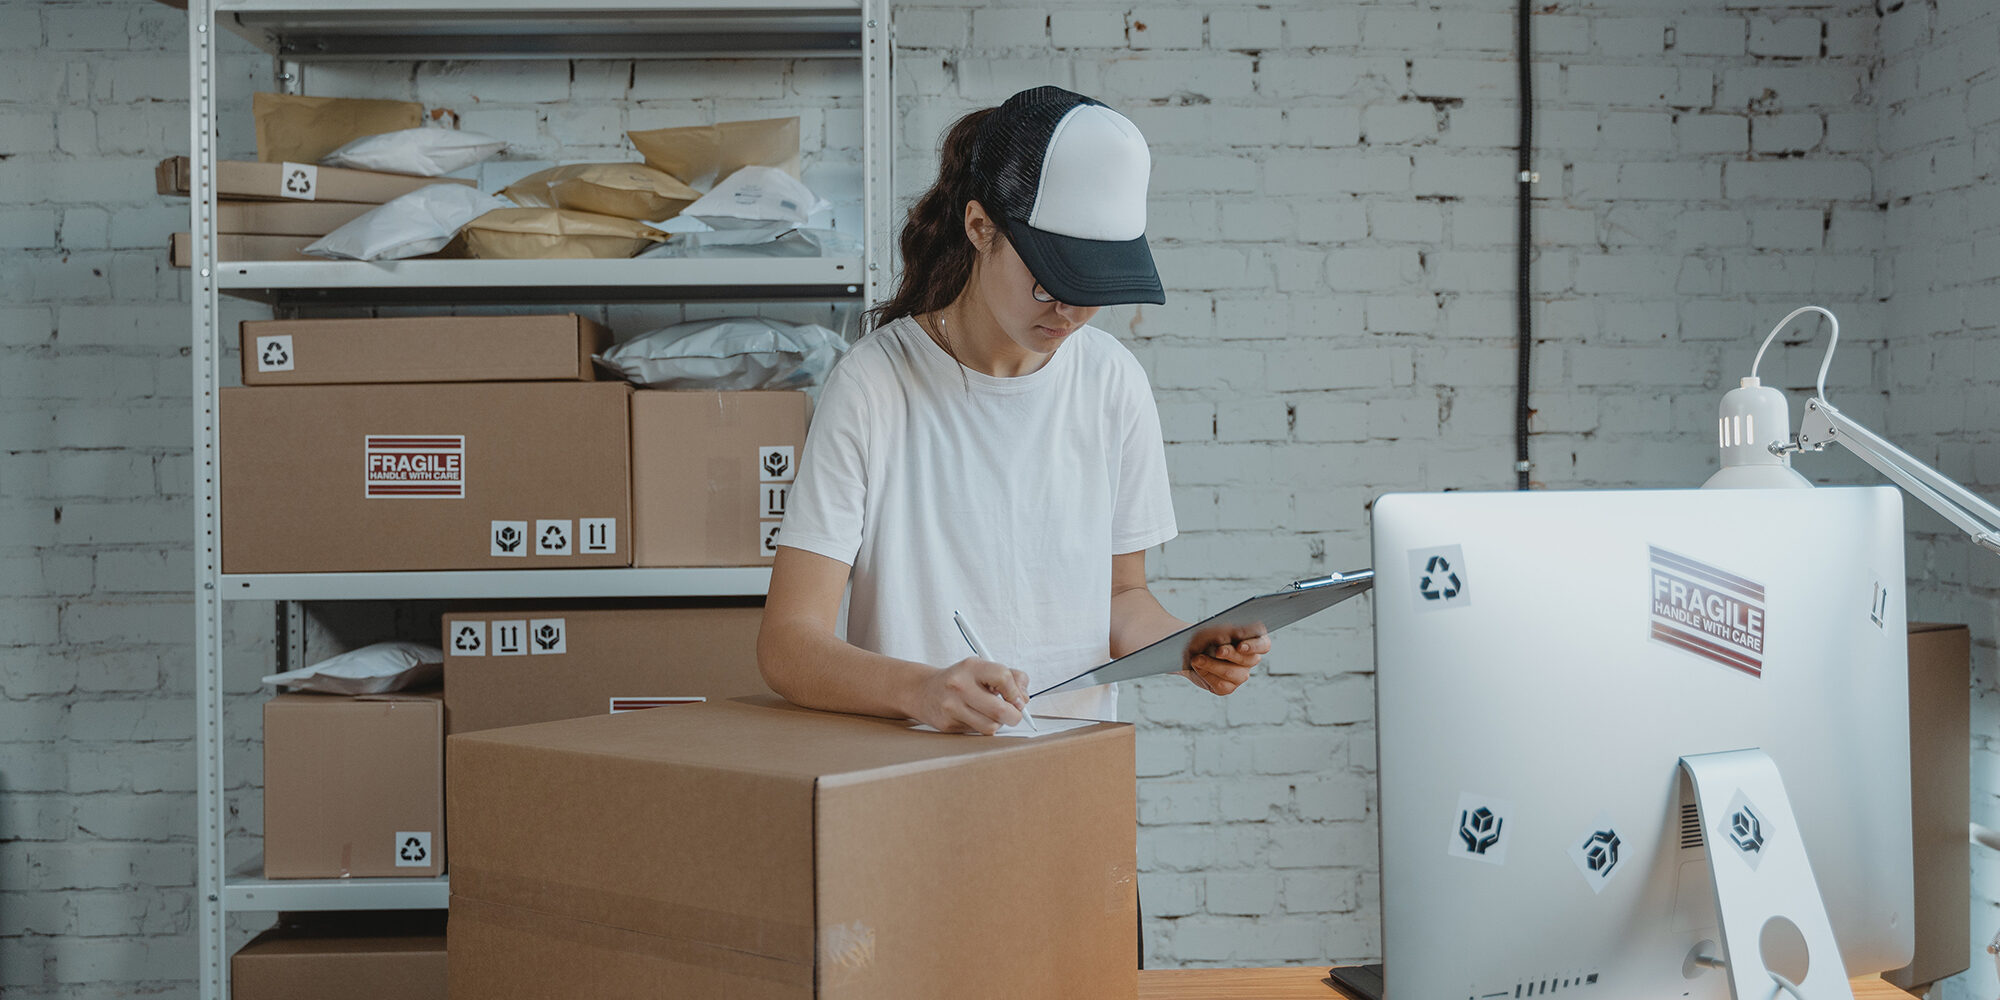 What Indie Beauty Brands Need To Know About Employing Third-Party Logistics Services